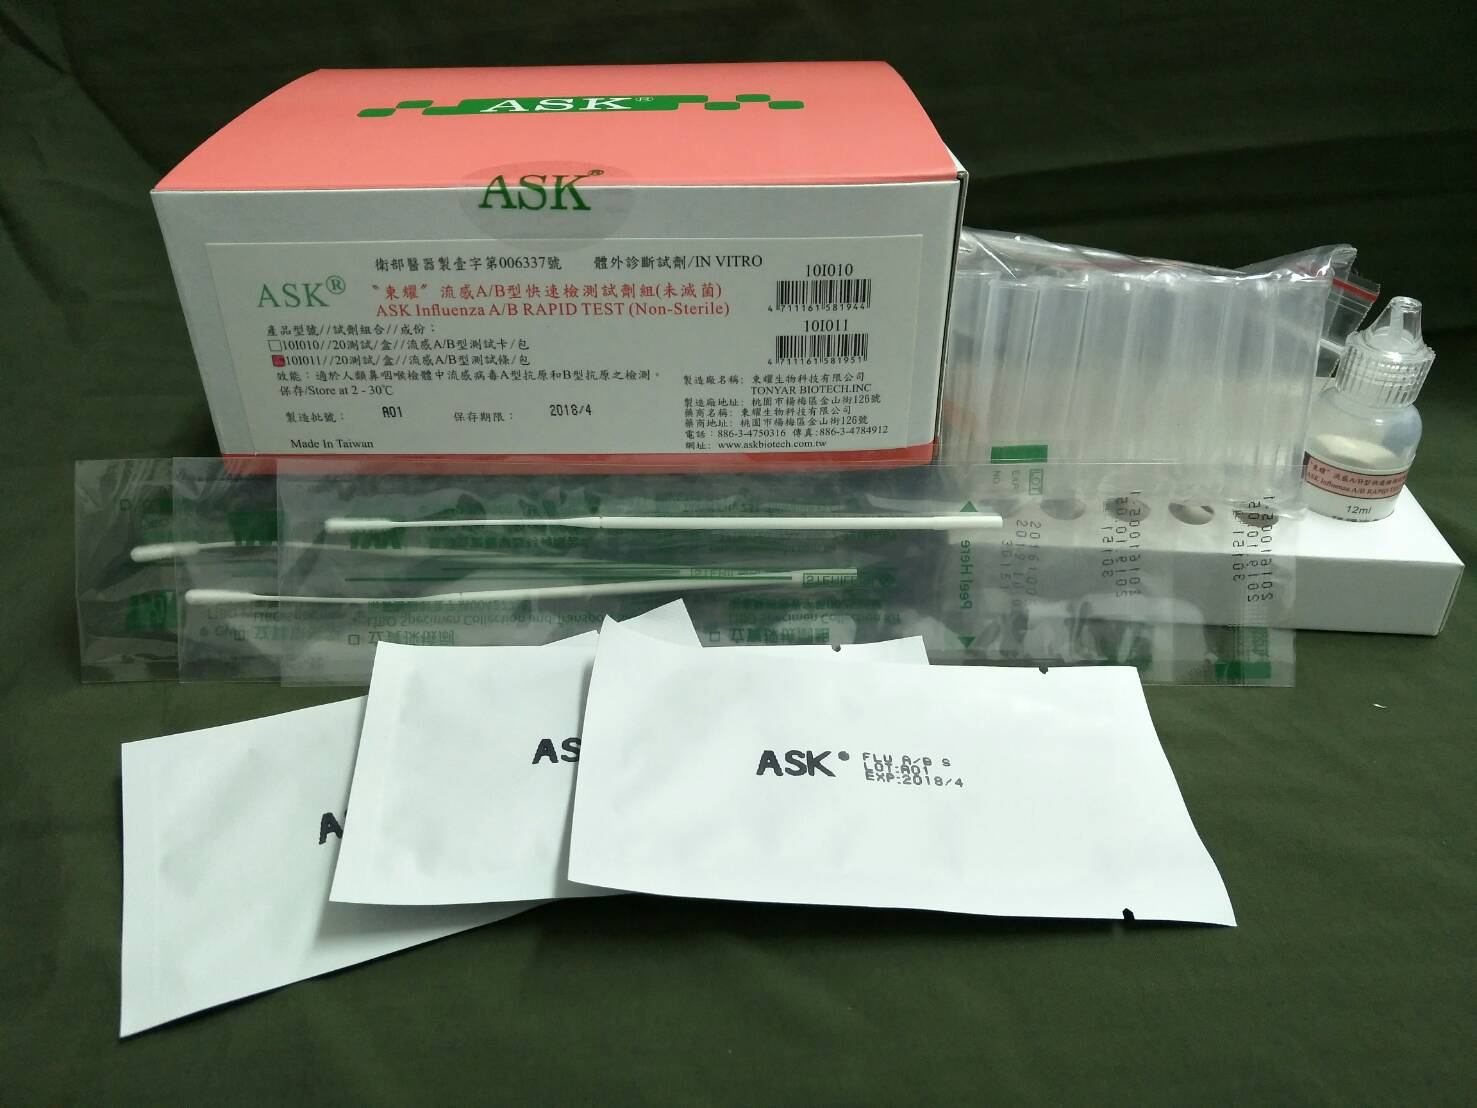 ASK Influenza A/B RAPID TEST (Non-Sterile)